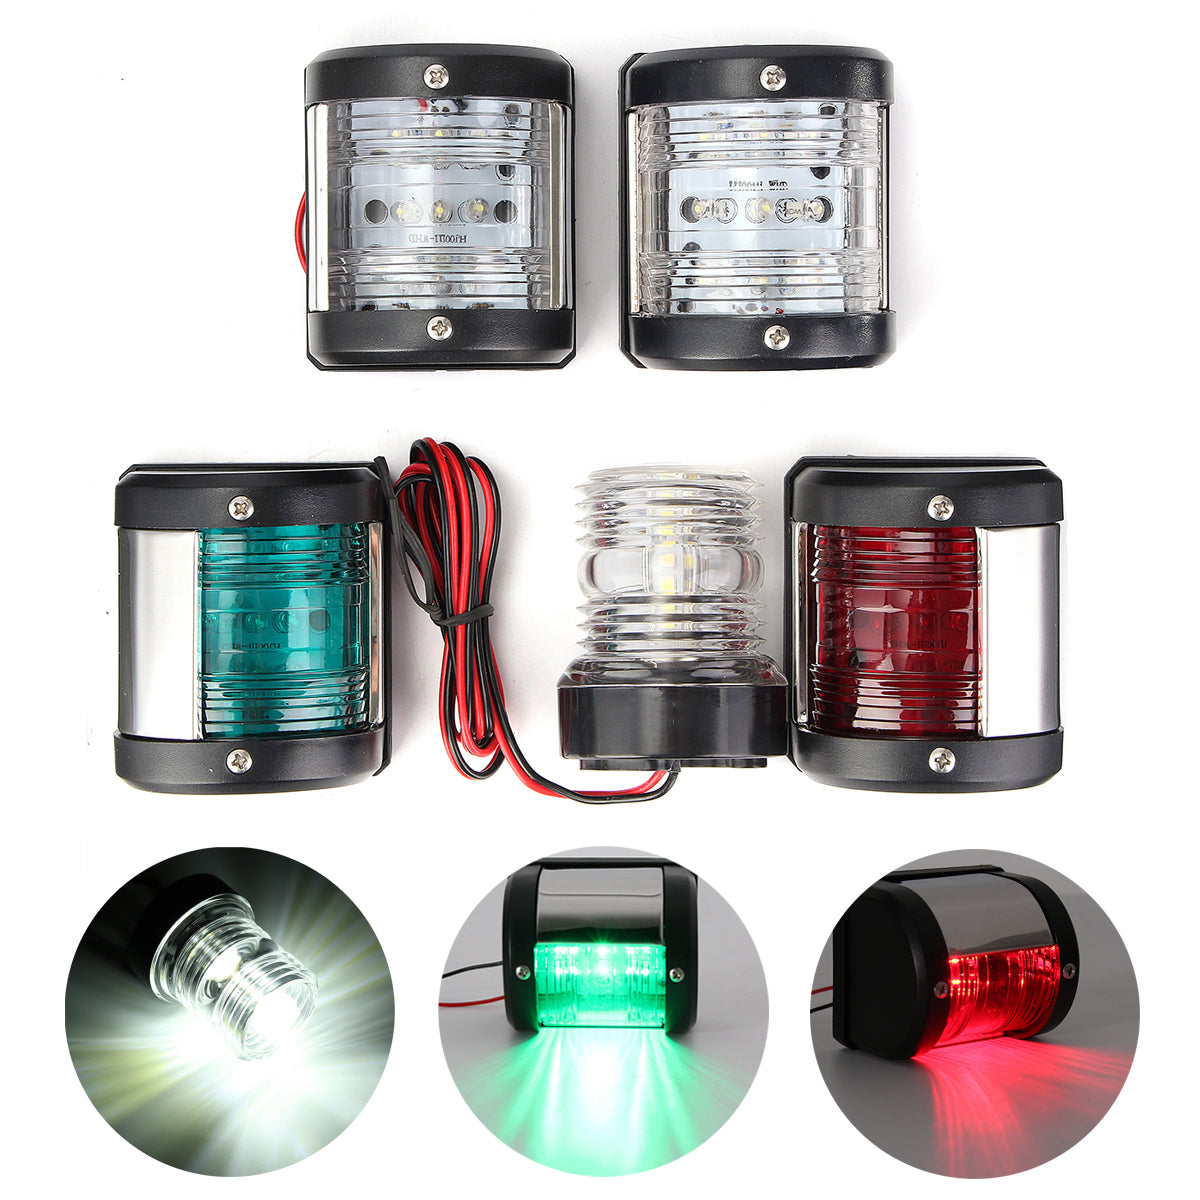 Boat Lights, Marine Lights, LED Navigation Lights, Boat Navigation Light Set 5 Lights - Port, Starboard, Masthead, Stern, Anchor Light 360